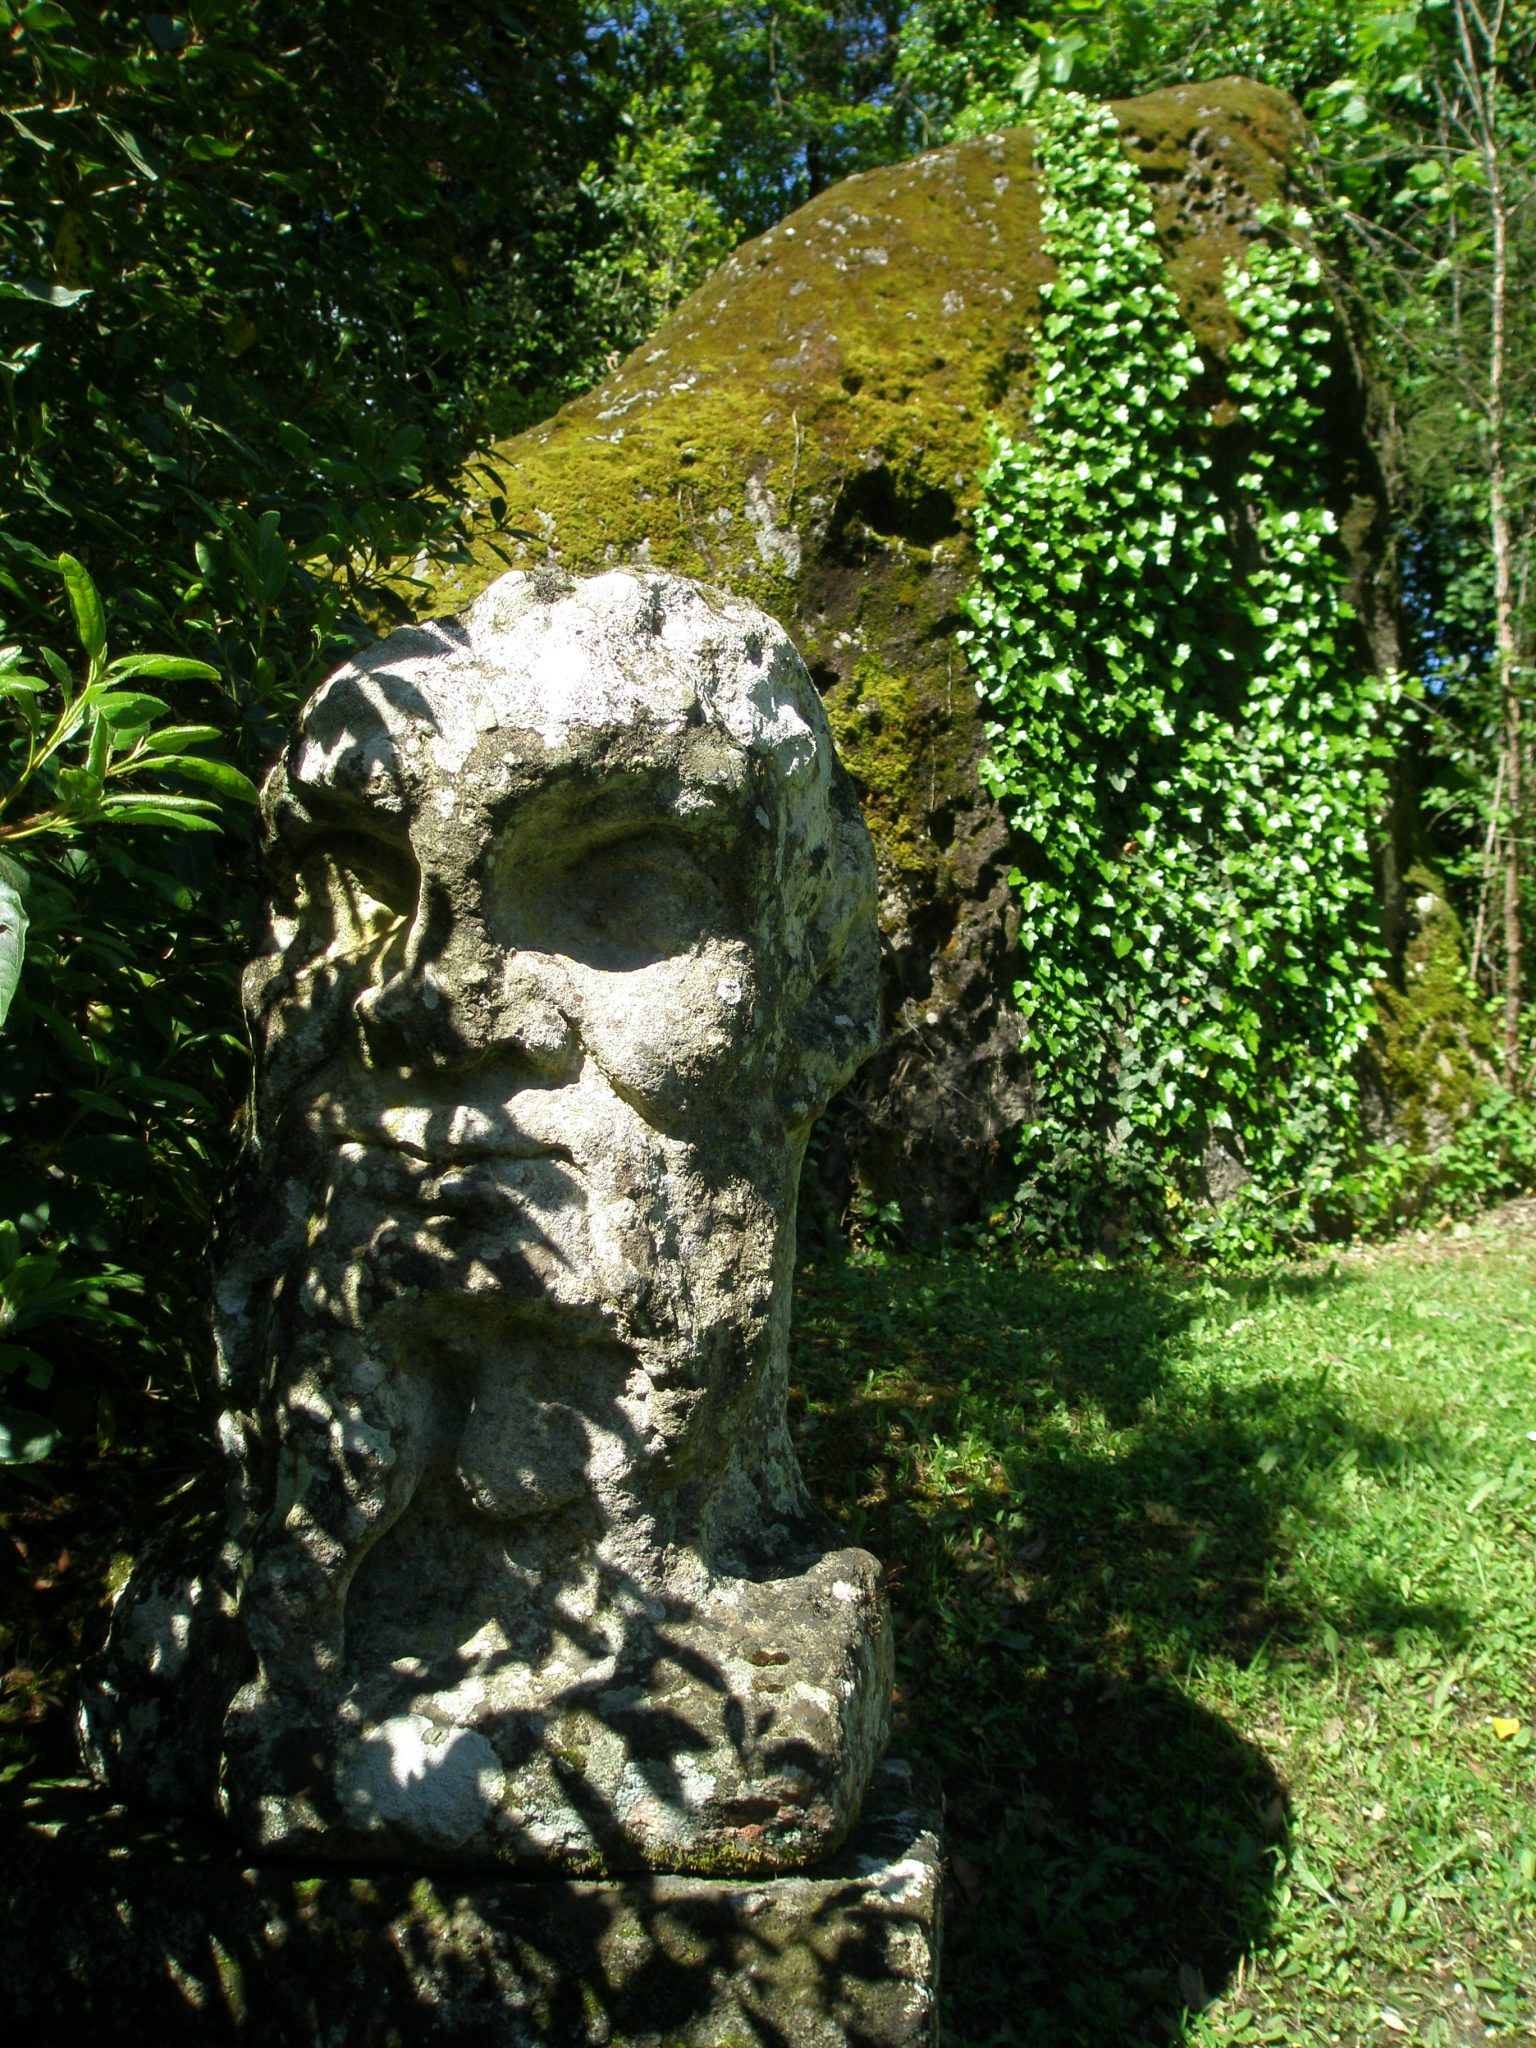 This Herm is one of the first Sights to greet the Sacro Bosco's visitors.